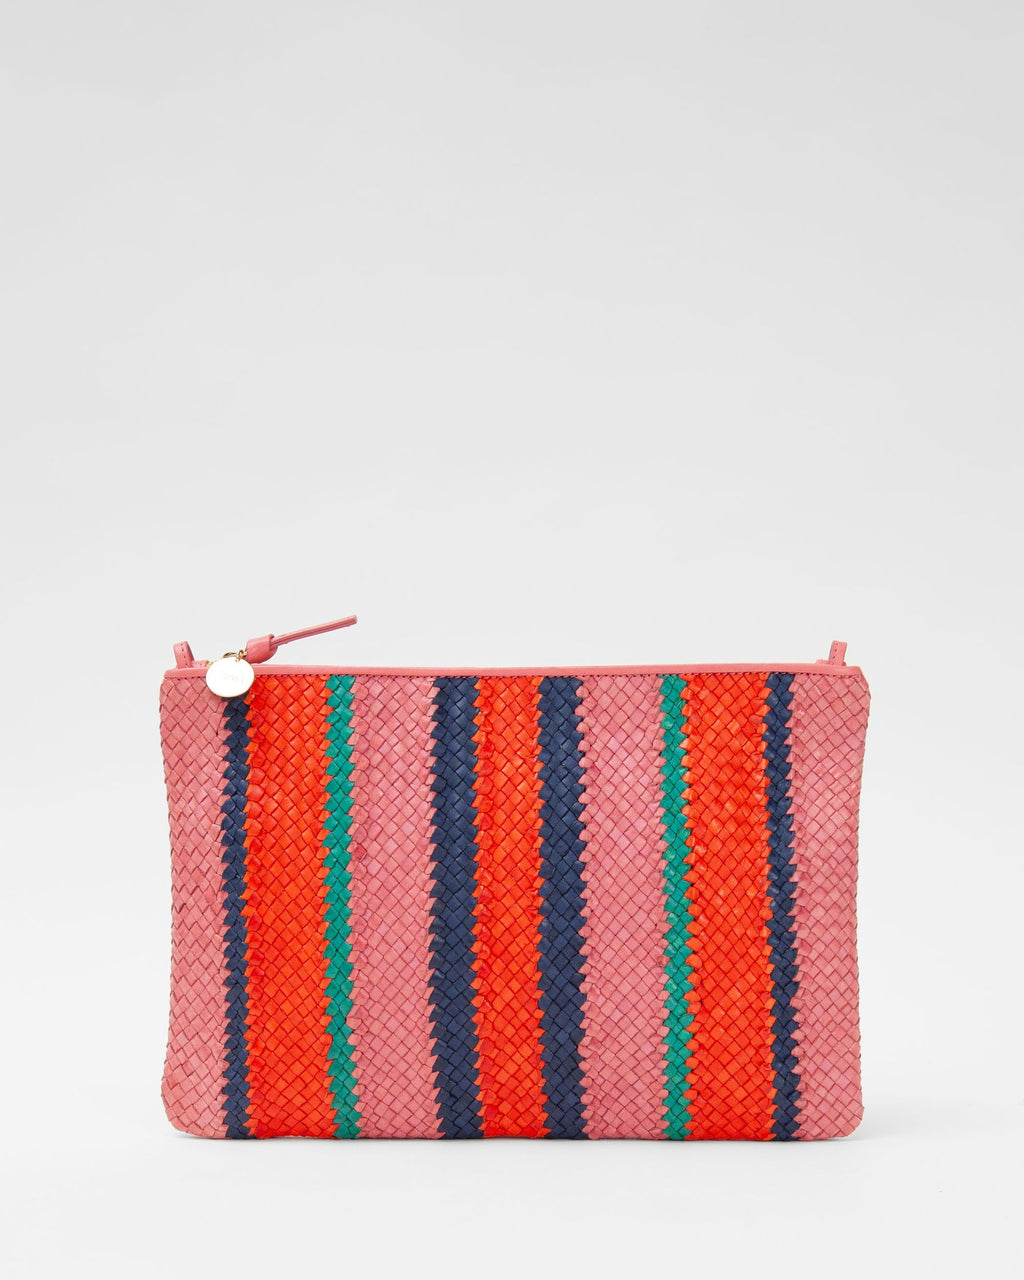 Clare V. - Flat Clutch (Striped Woven Petal)